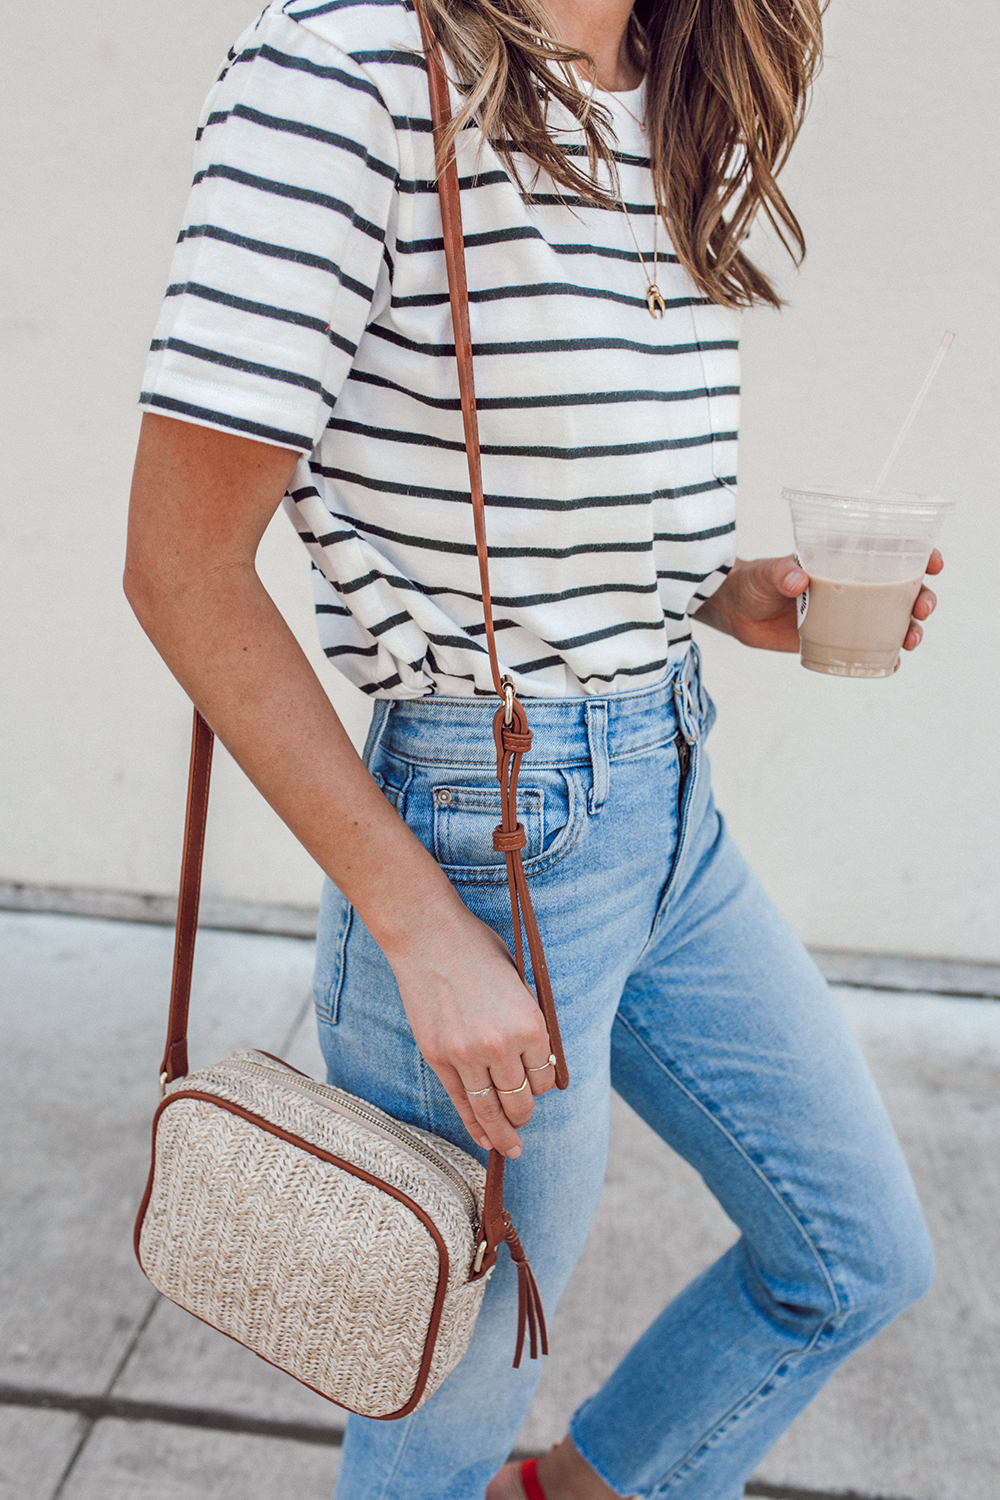 livvyland-blog-olivia-watson-sole-society-red-sandal-flats-spring-summer-outfit-idea-style-austin-texas-fashion-blogger-striped-shirt-7